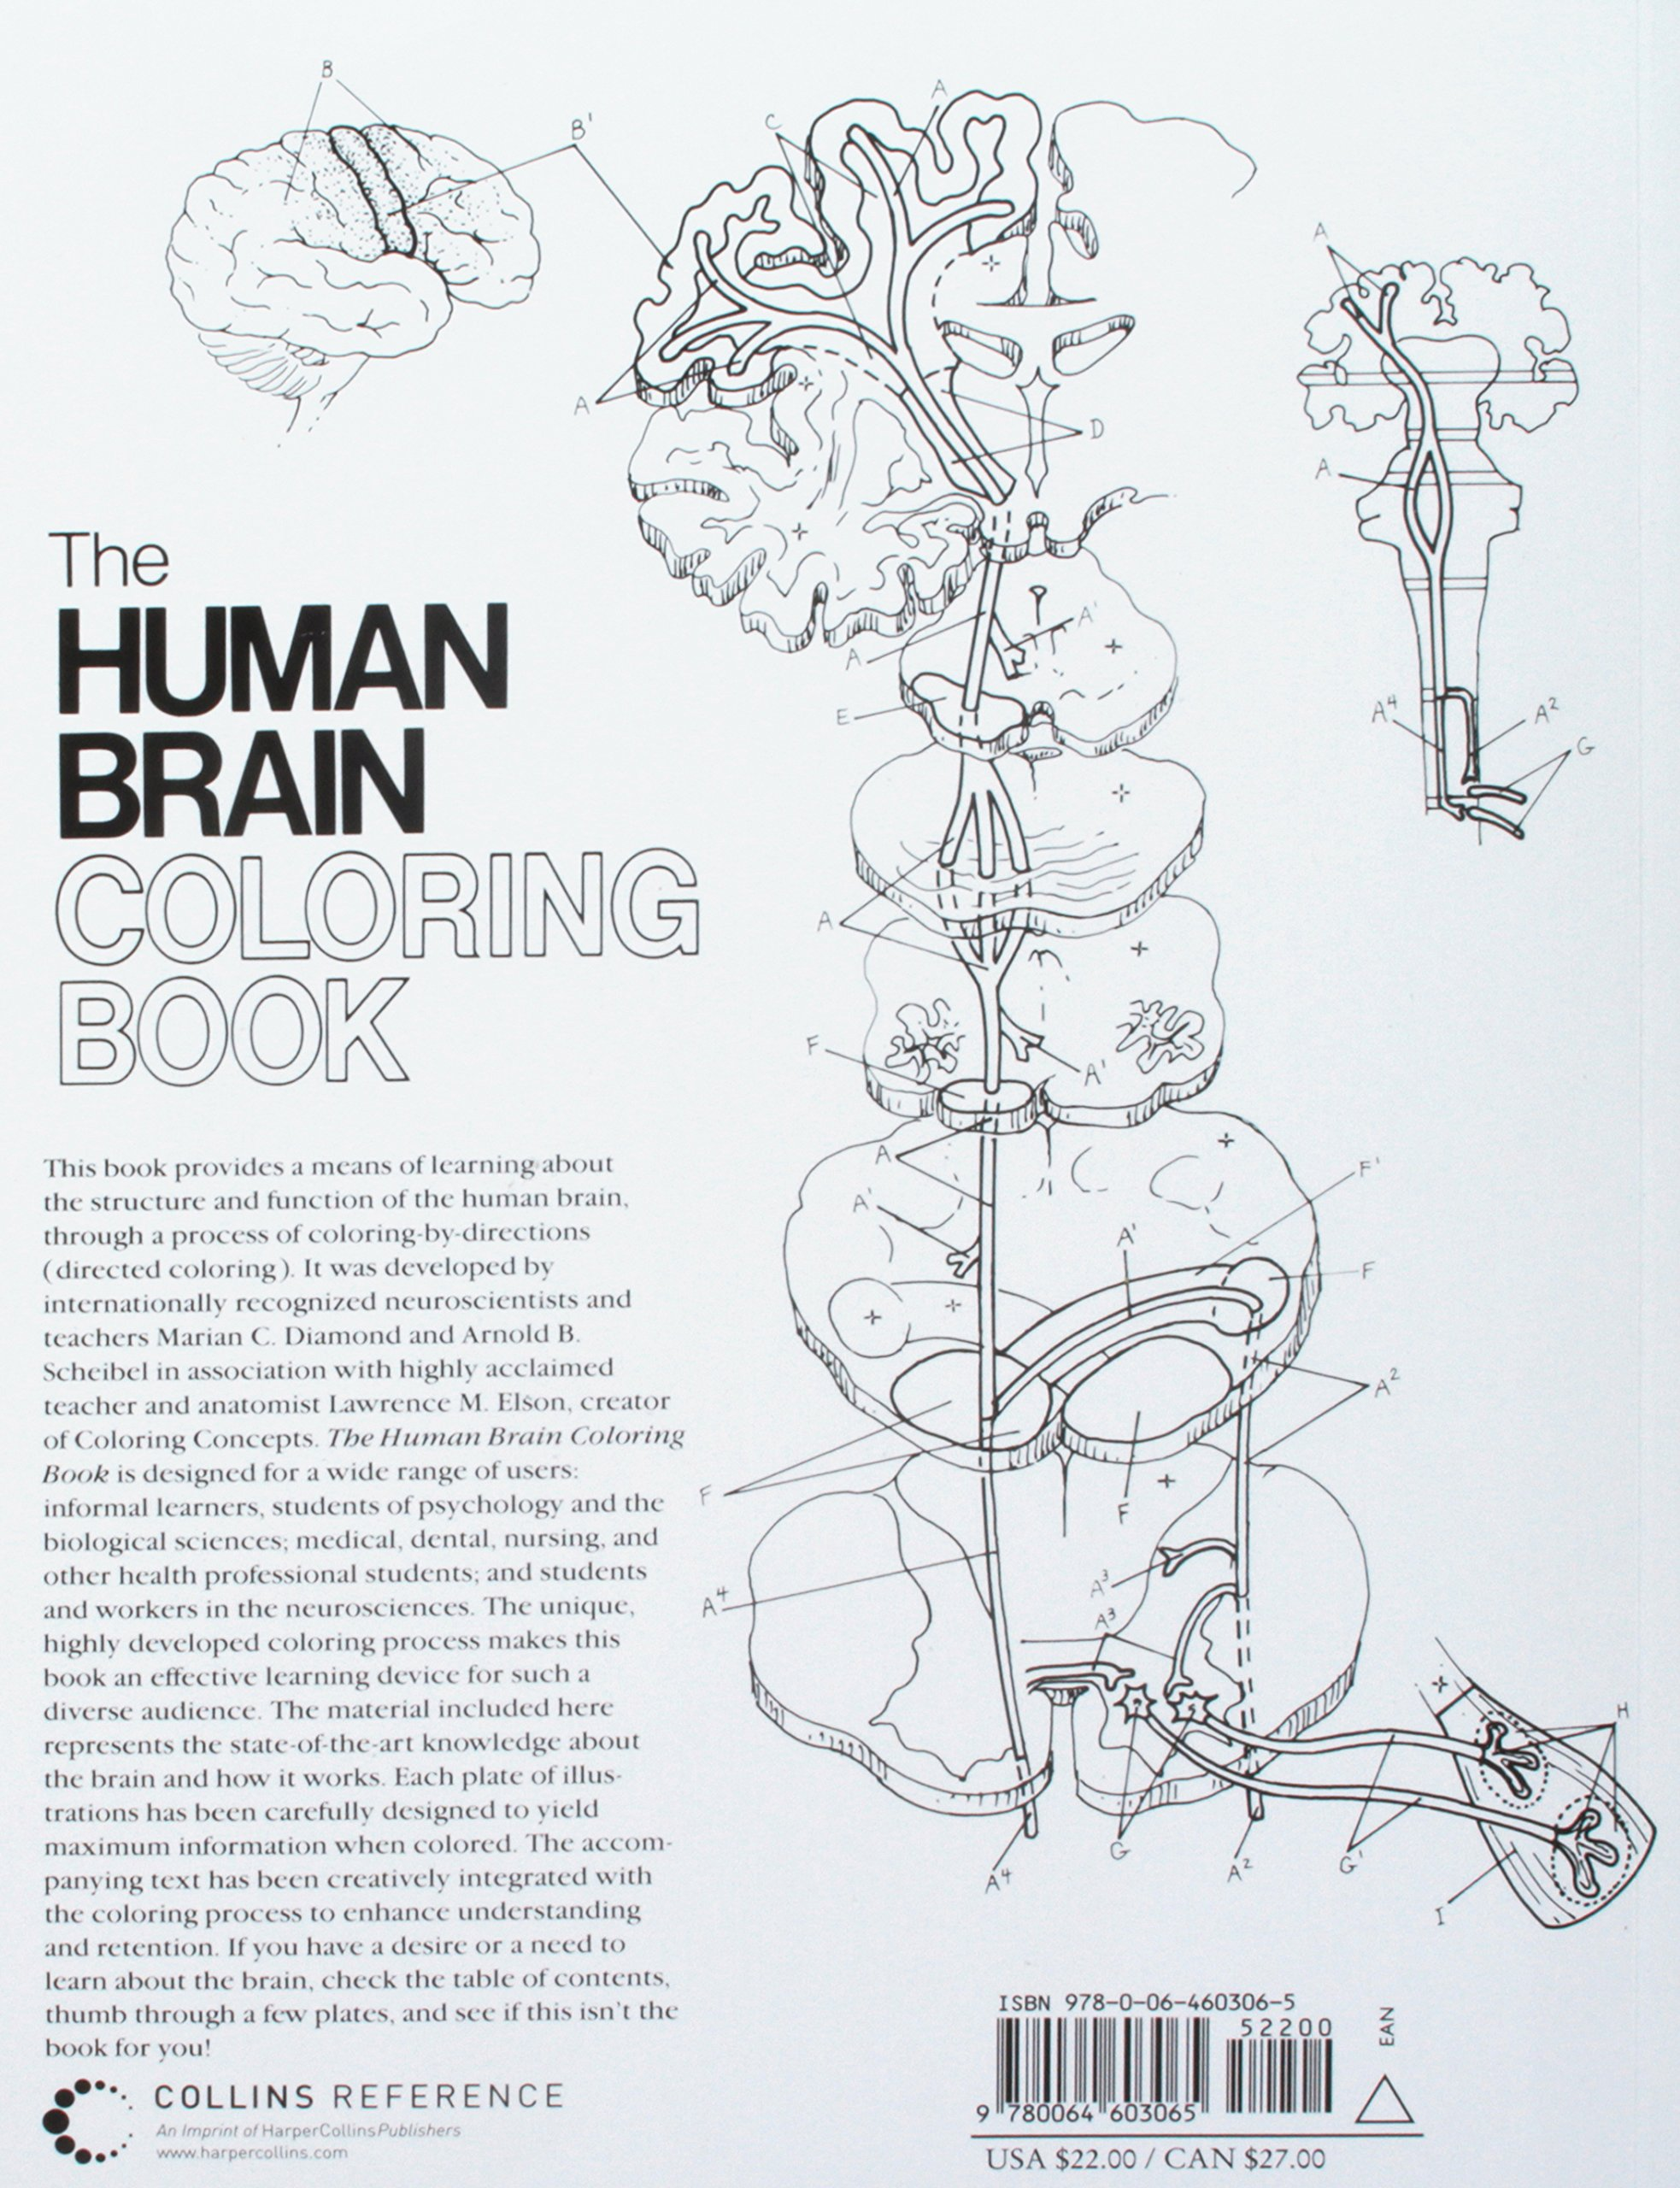 The Human Brain Coloring Book Coloring Concepts Series: Amazon.co.uk ...